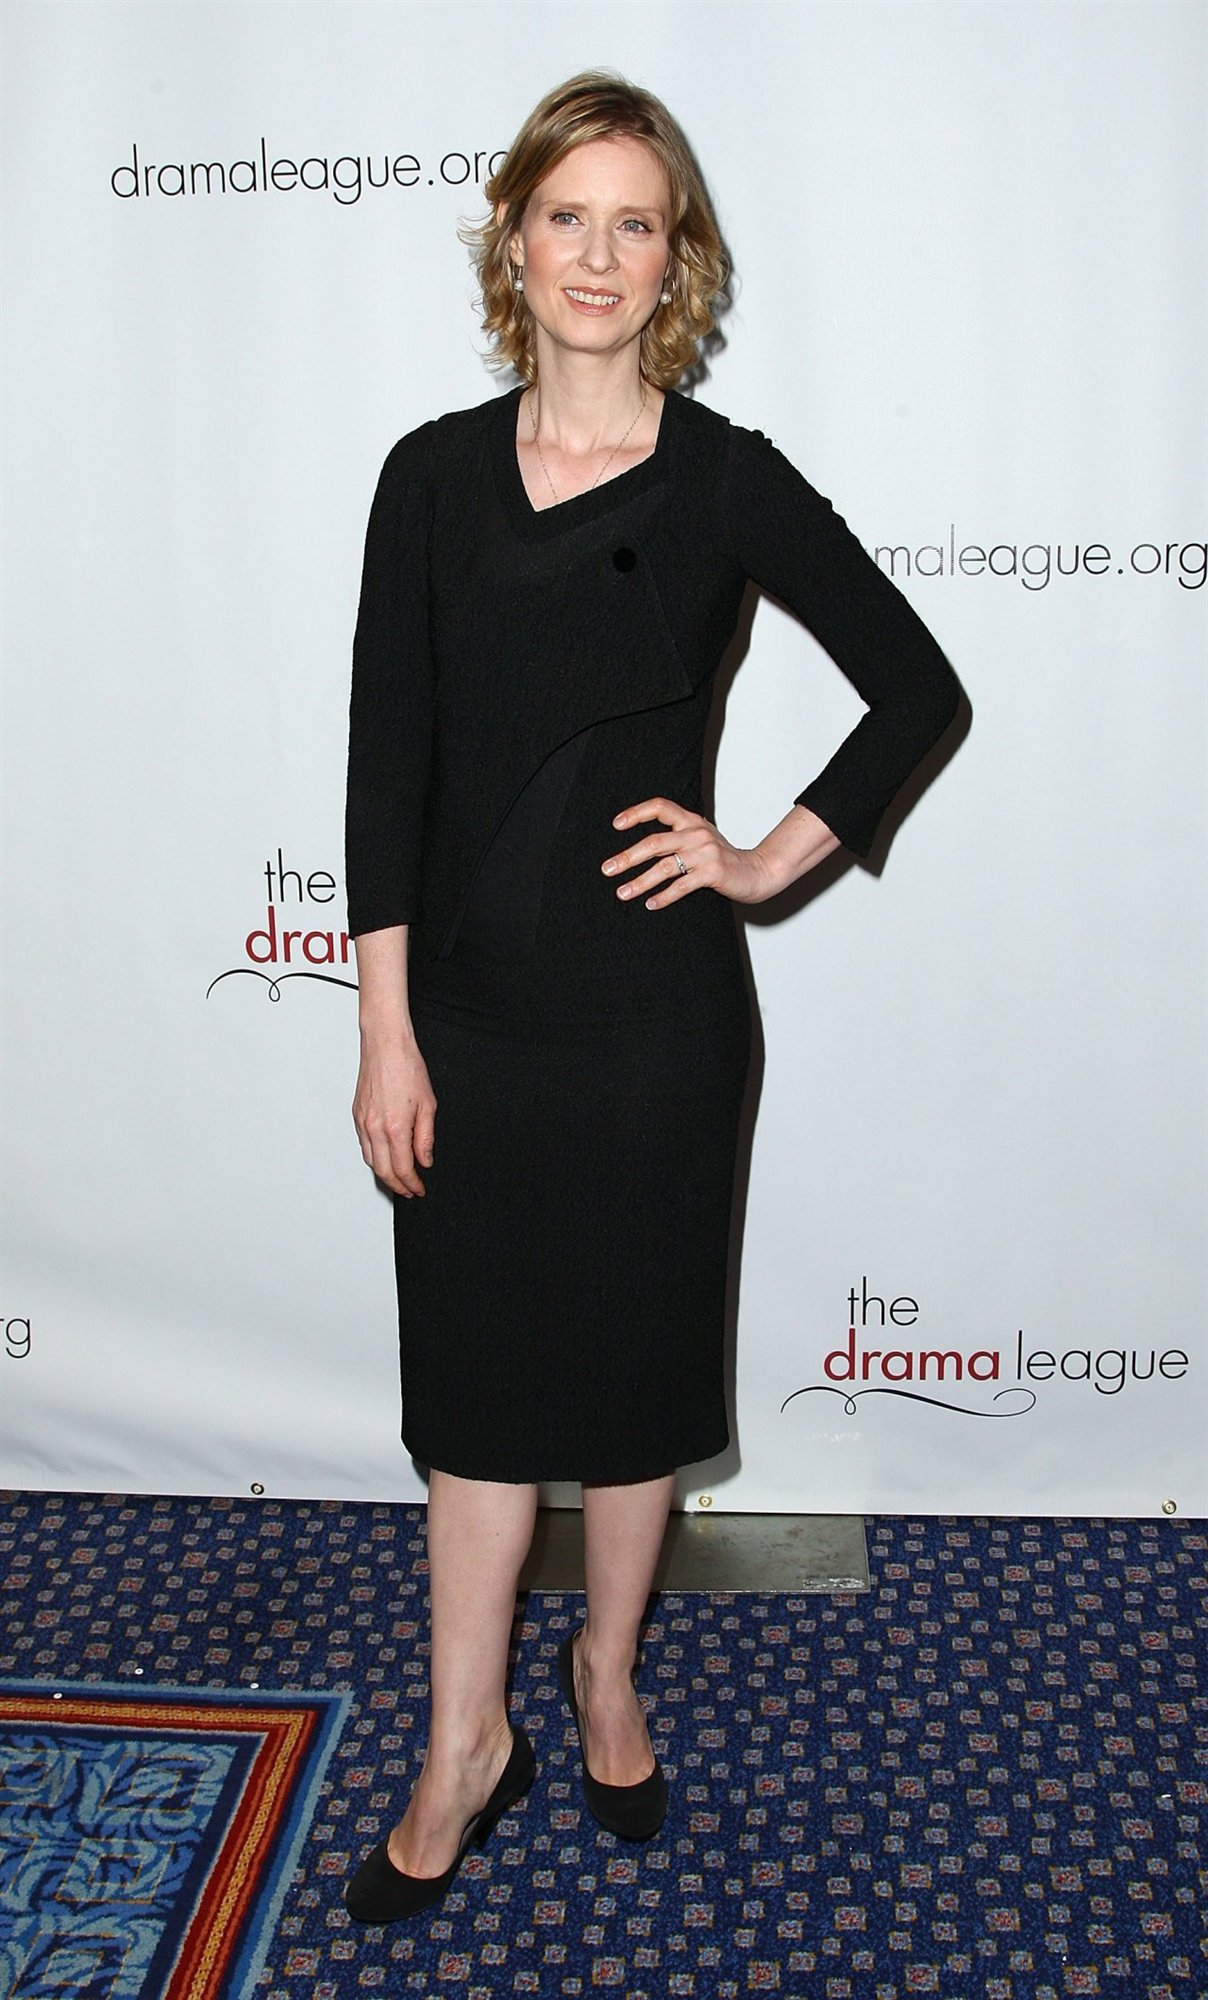 cynthia nixon wallpaper - photo #30